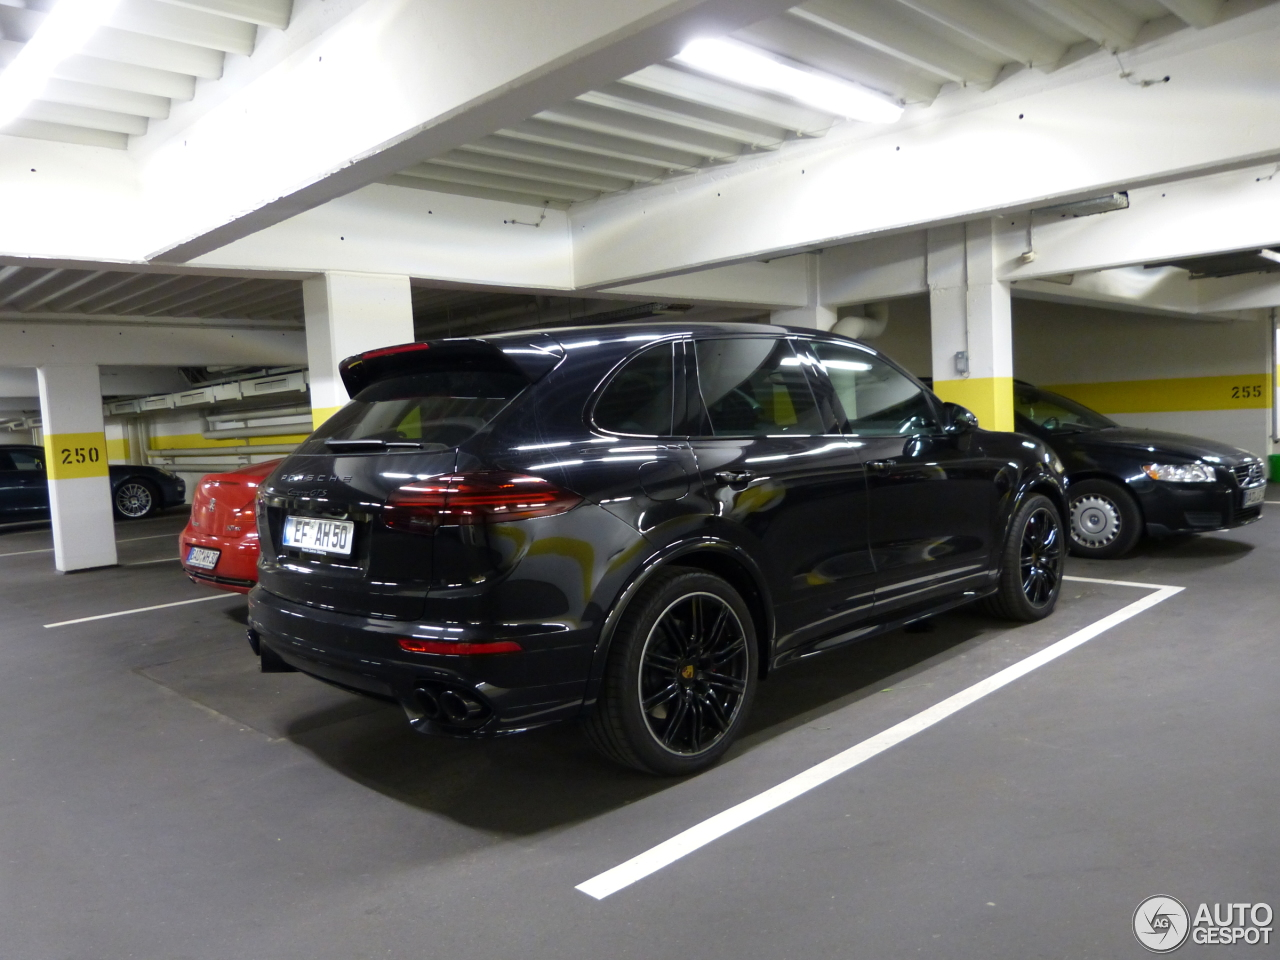 porsche 958 cayenne gts mkii 10 may 2015 autogespot. Black Bedroom Furniture Sets. Home Design Ideas